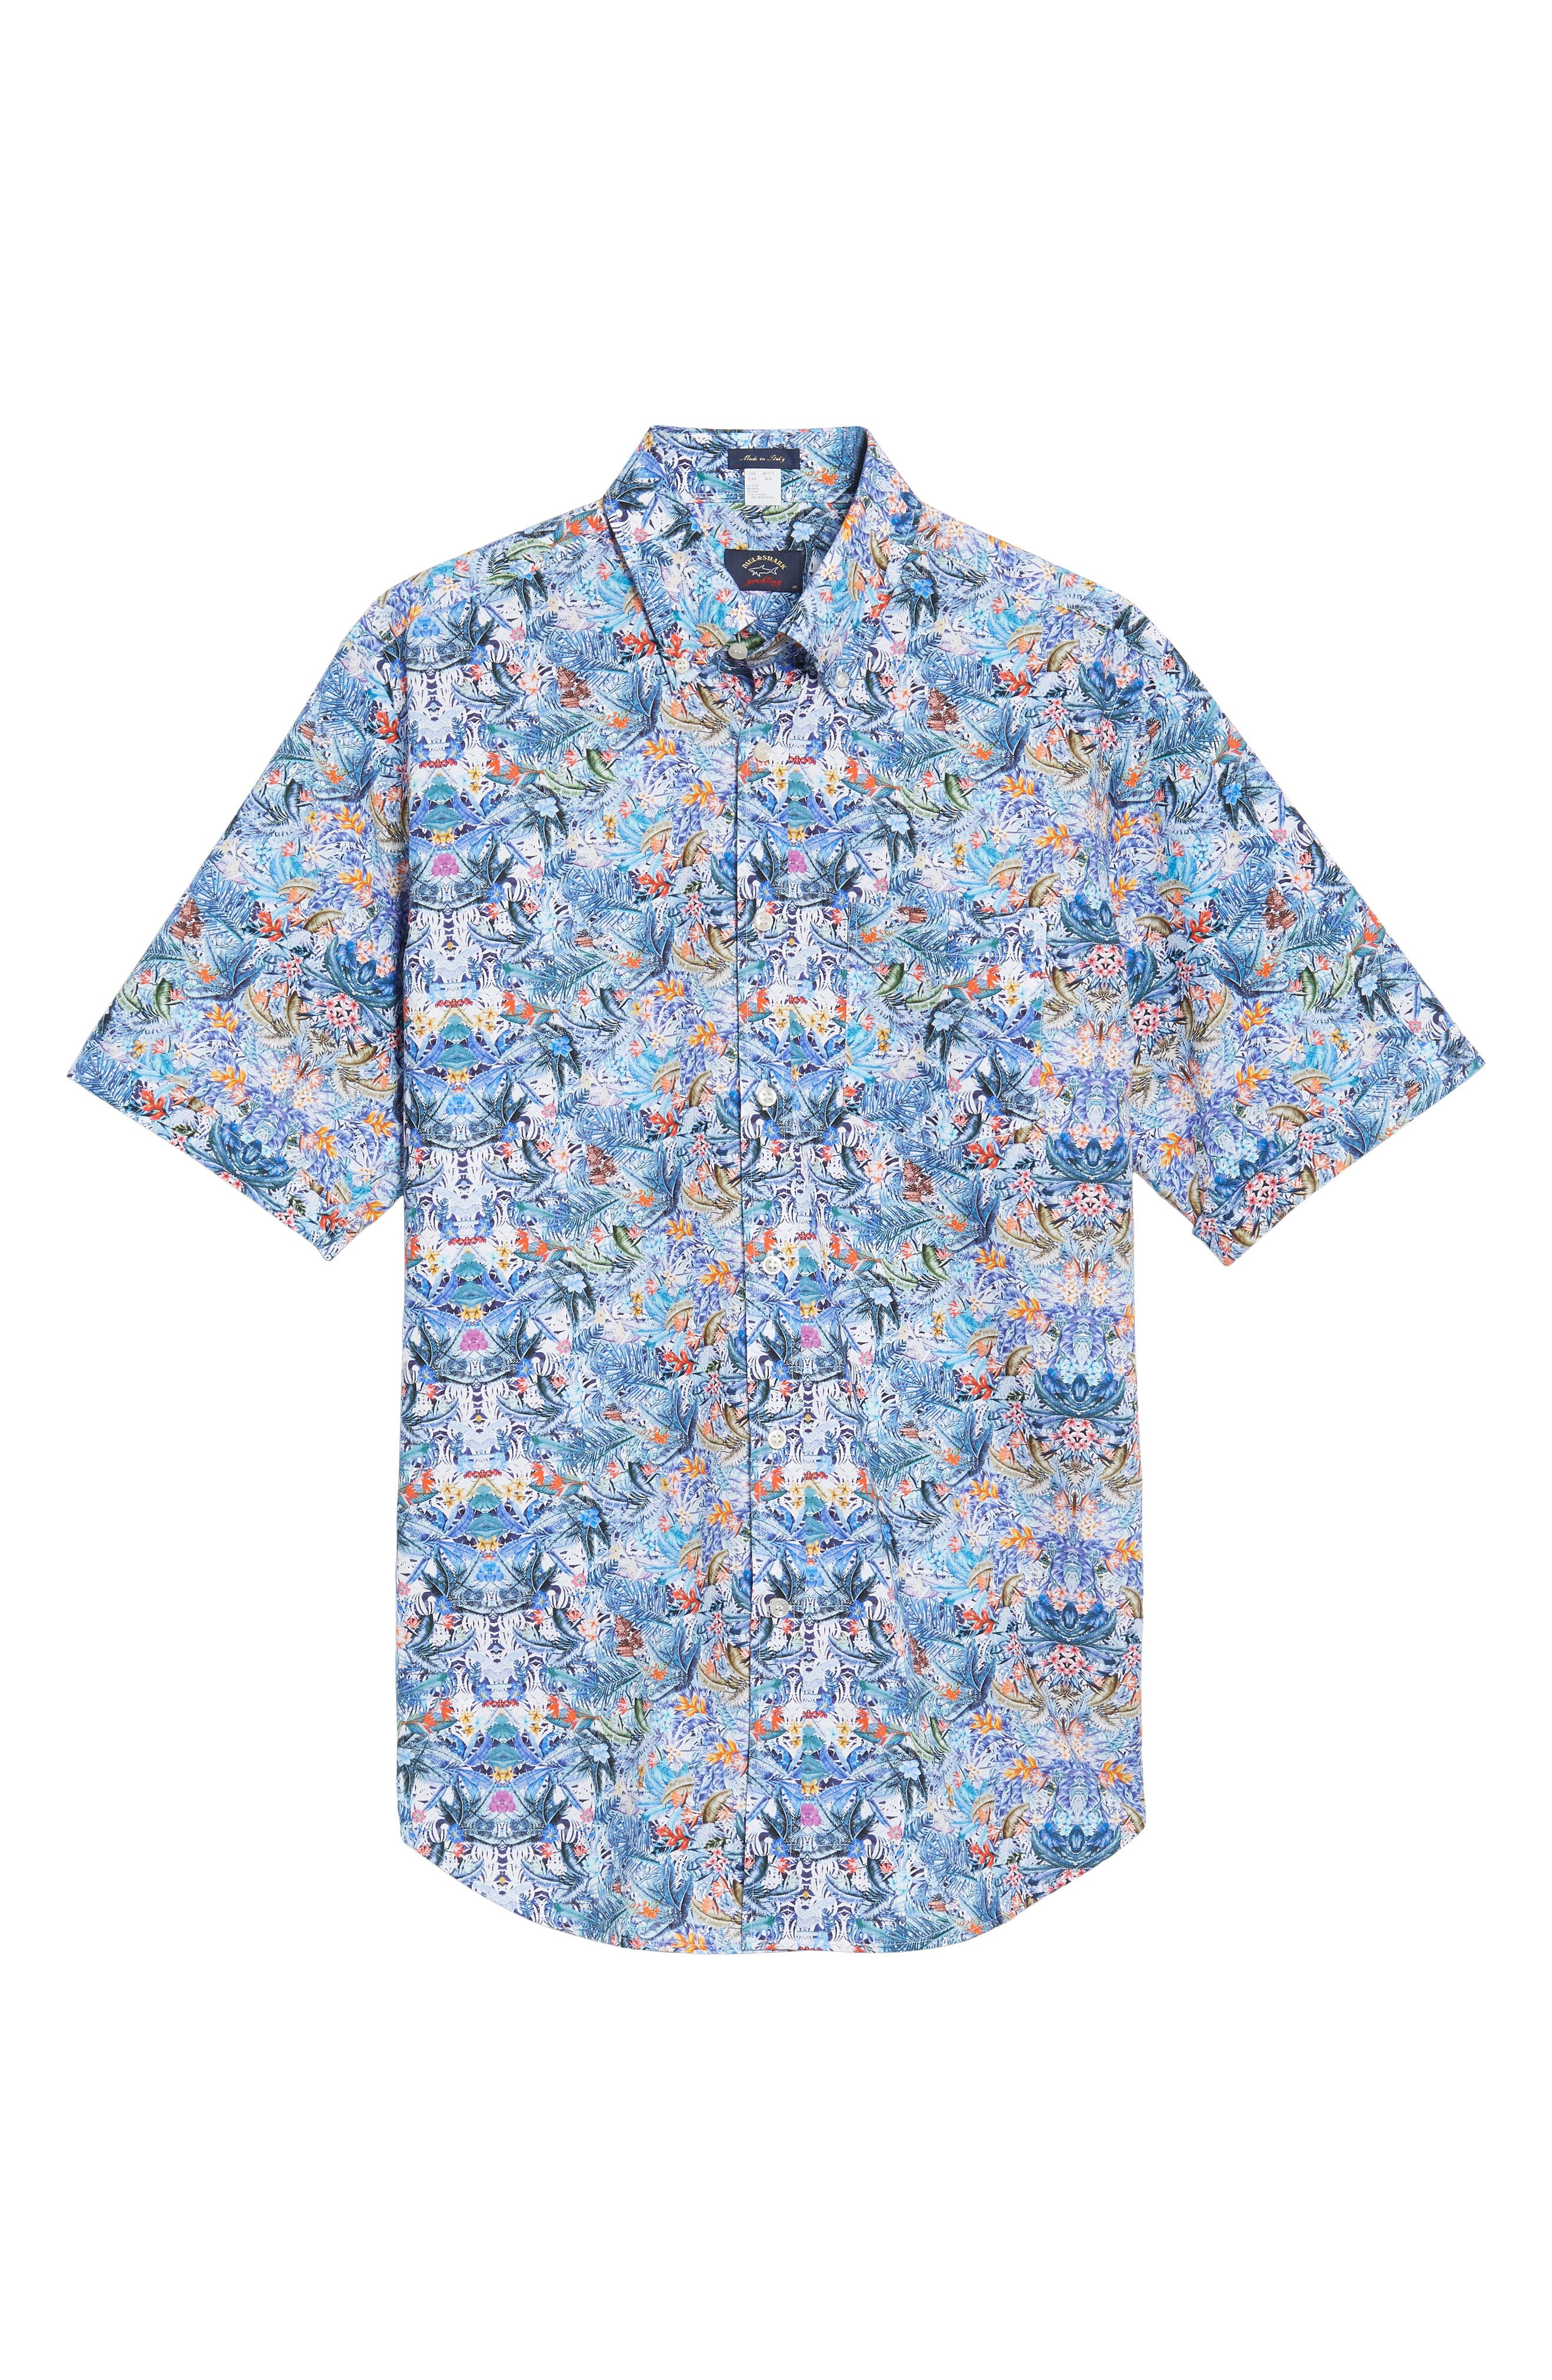 Paul&Shark Regular Fit Tropical Print Sport Shirt,                             Alternate thumbnail 6, color,                             101